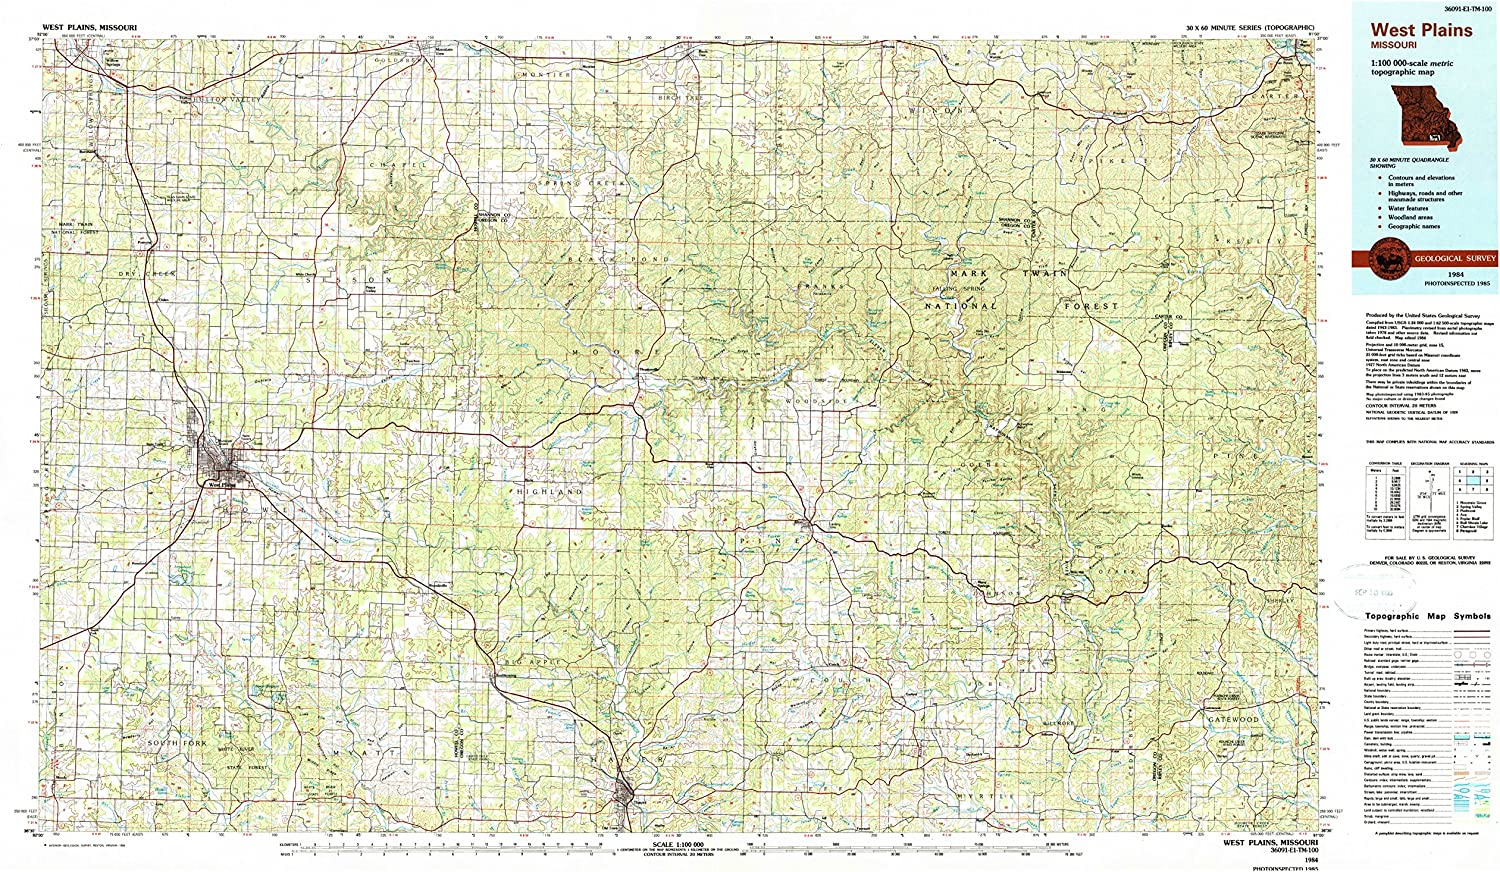 YellowMaps West Plains MO topo map Scale Max 53% OFF X Popular overseas 1:100000 Minu 30 60